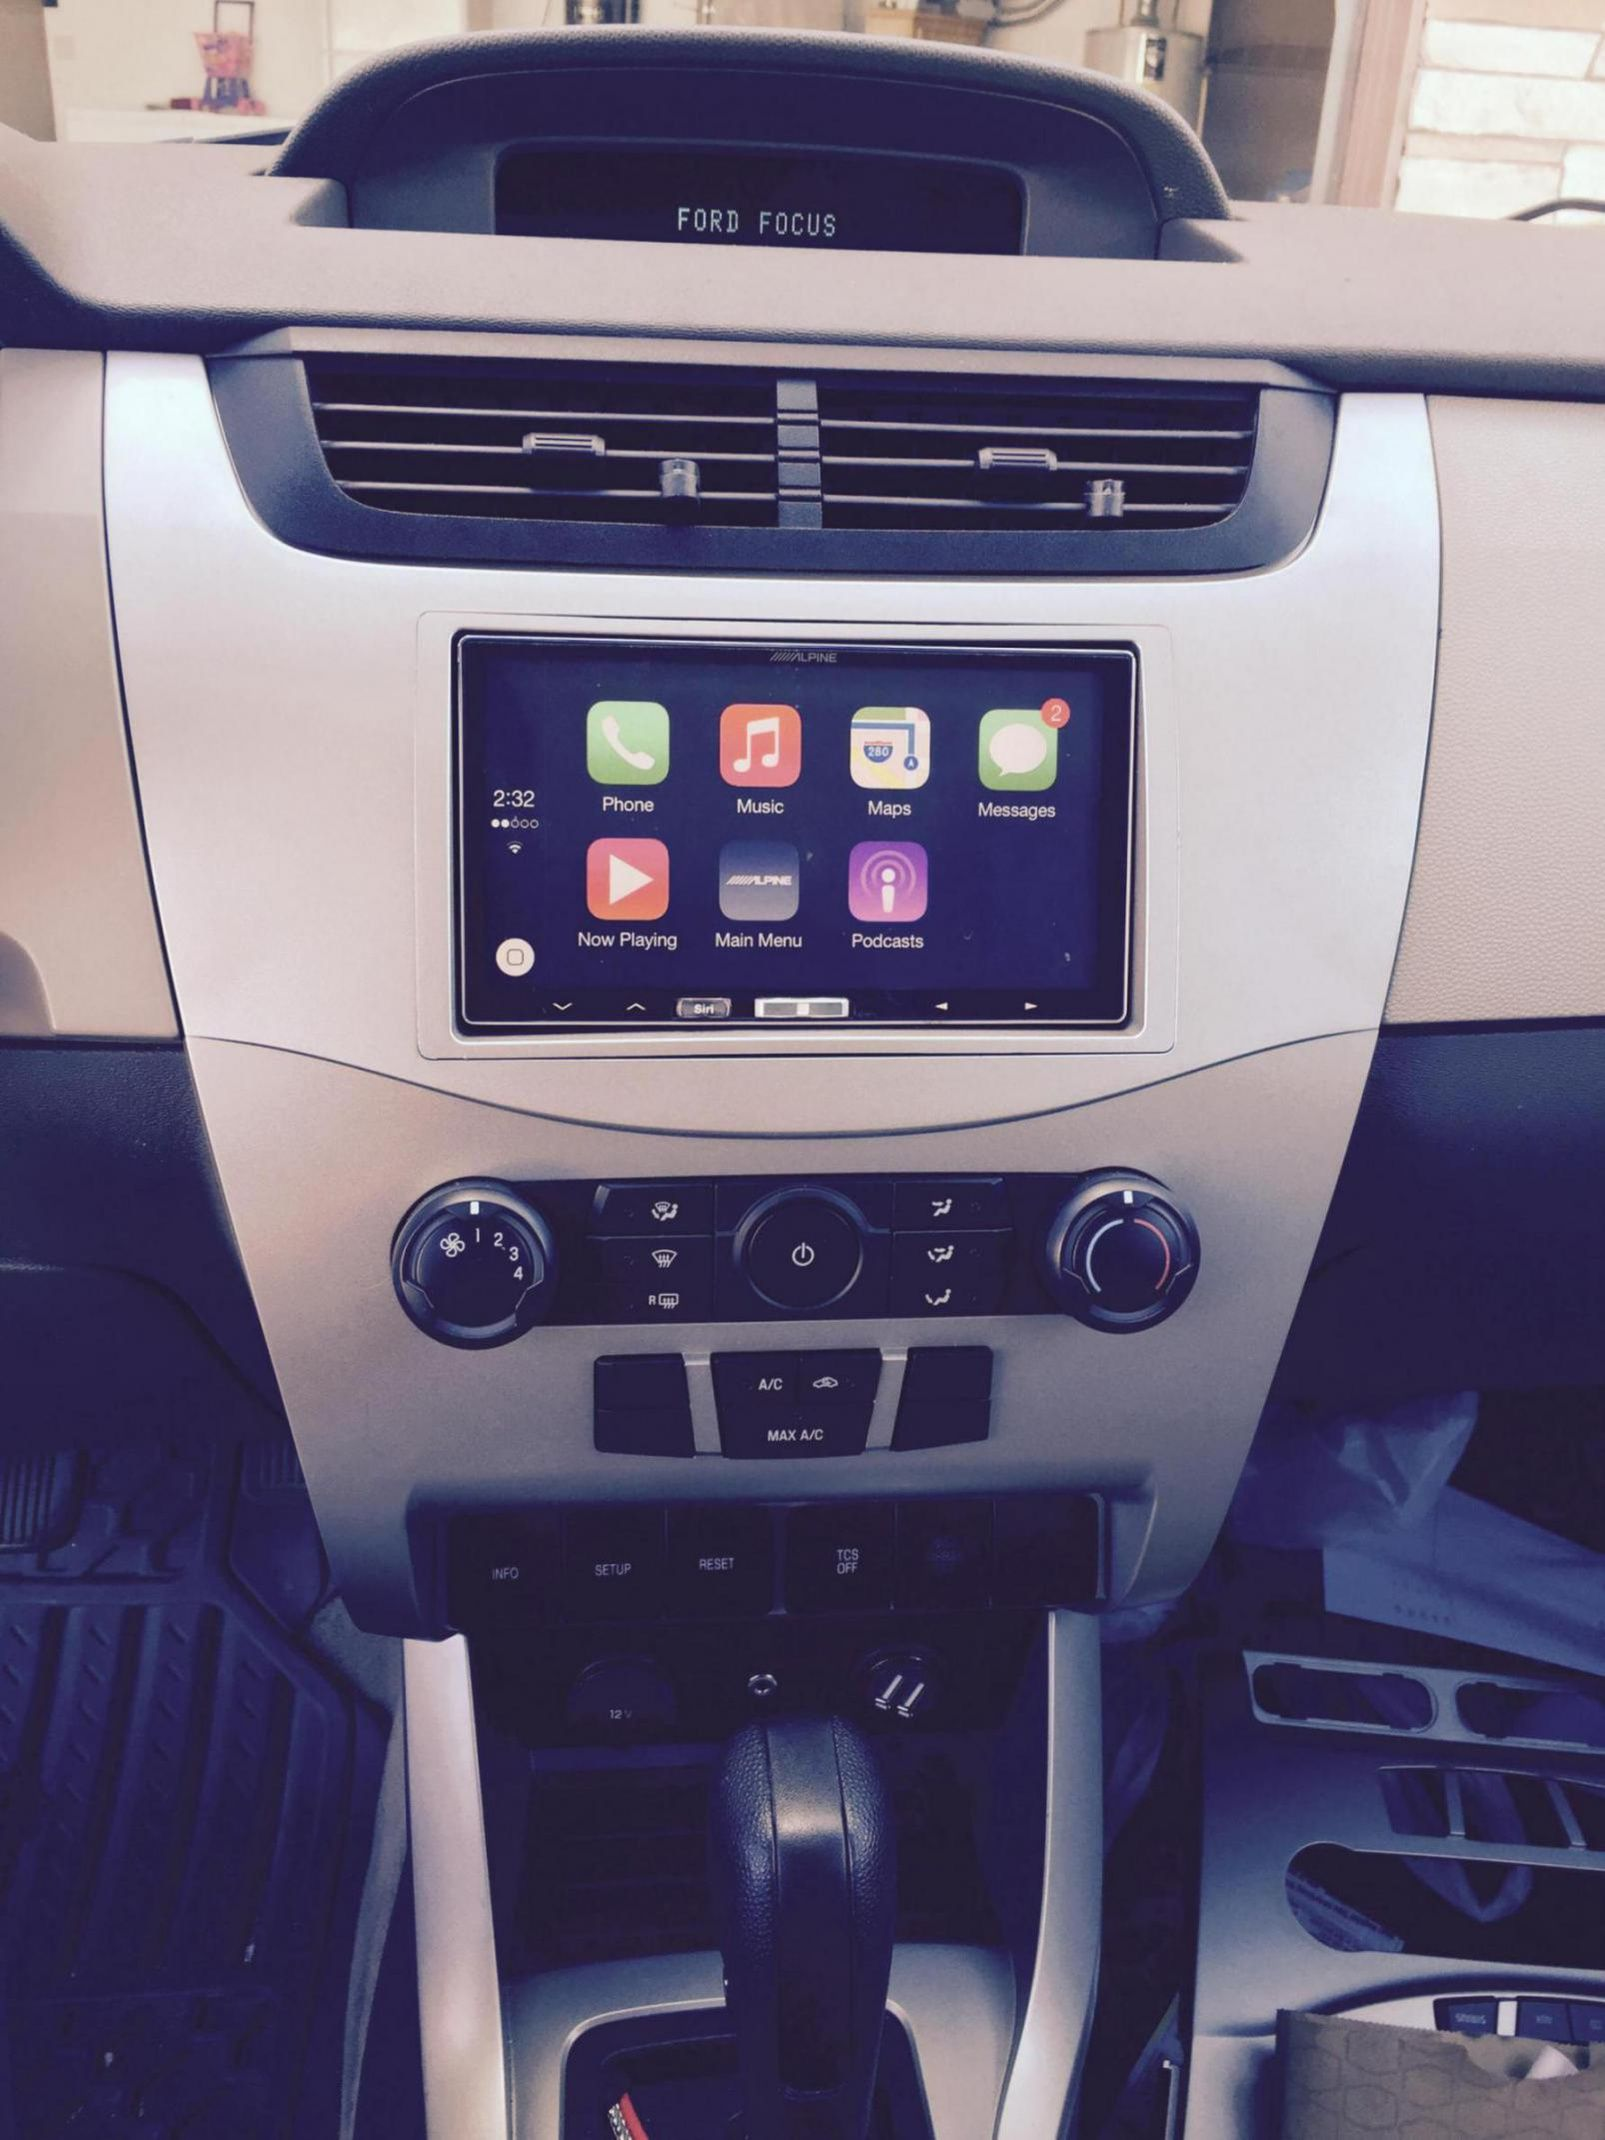 2008 Ford Focus aftermarket stereo-image_1428611724266.jpg